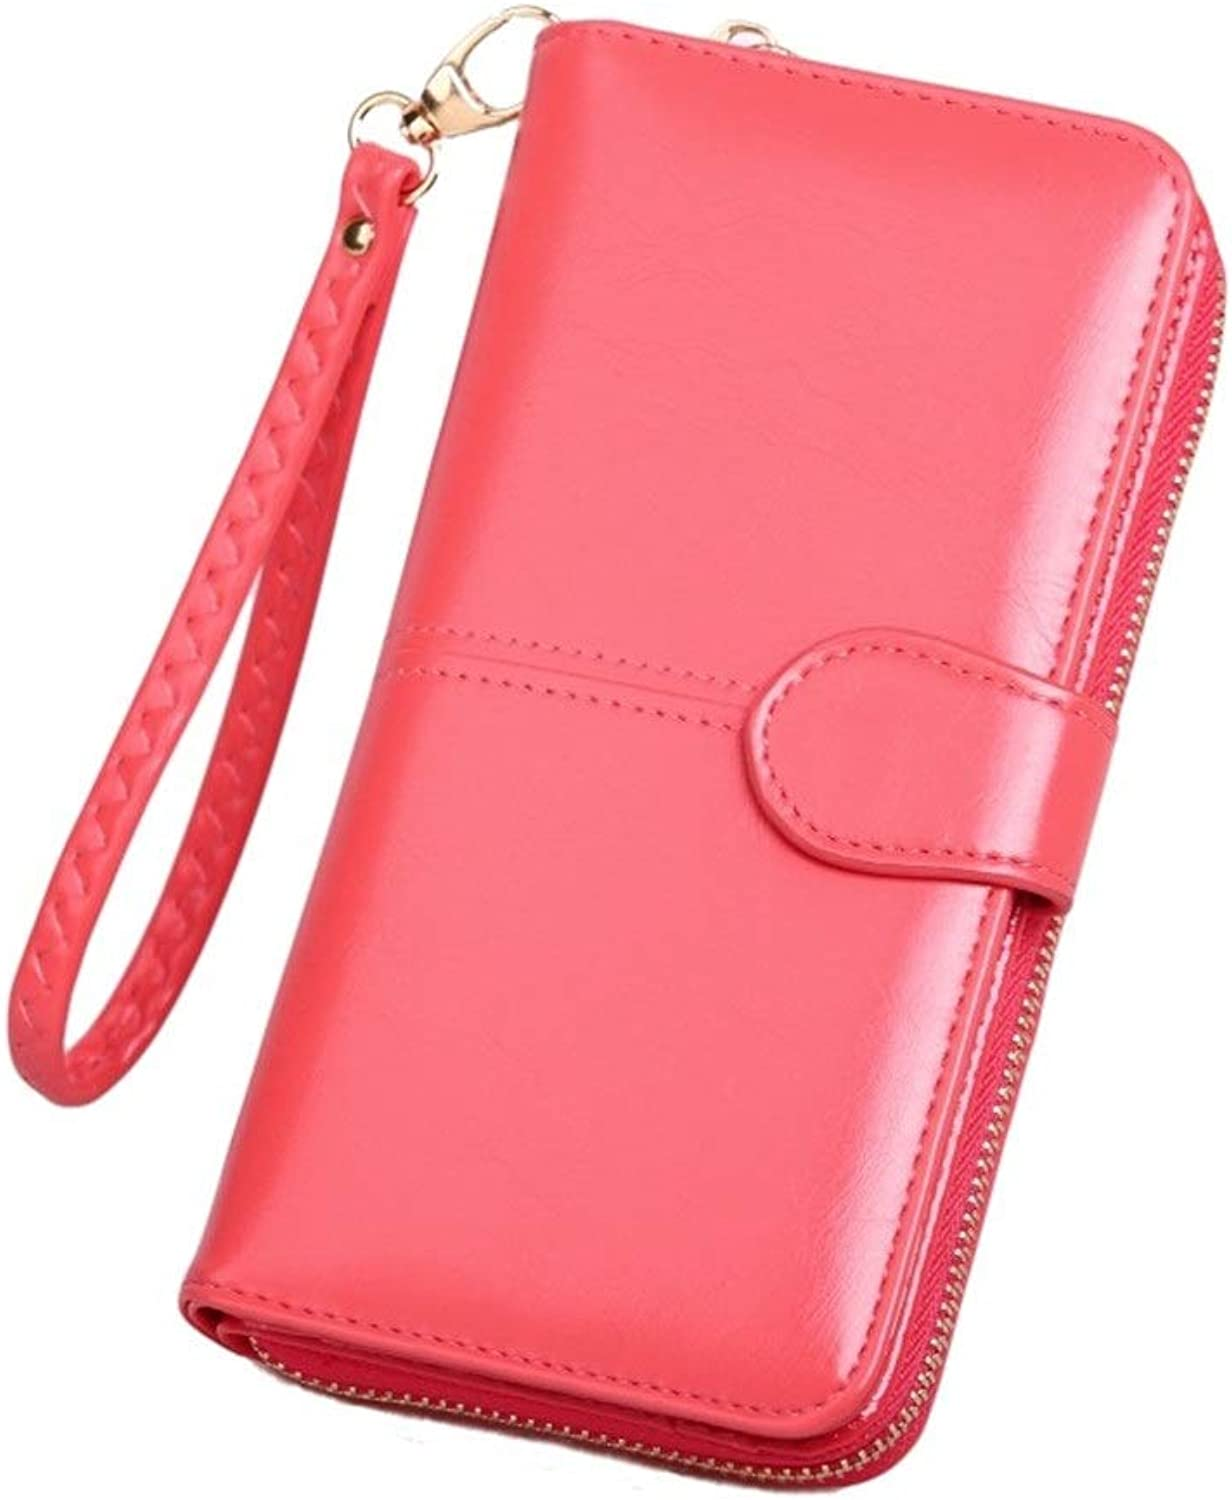 Sturdy New Women Long Zipper Purse PU Leather Card Wallet Ladies Large Capacity Credit Card Holder Stylish Clutch Purse Large Capacity (color   Red 2, Size   Feer Size)